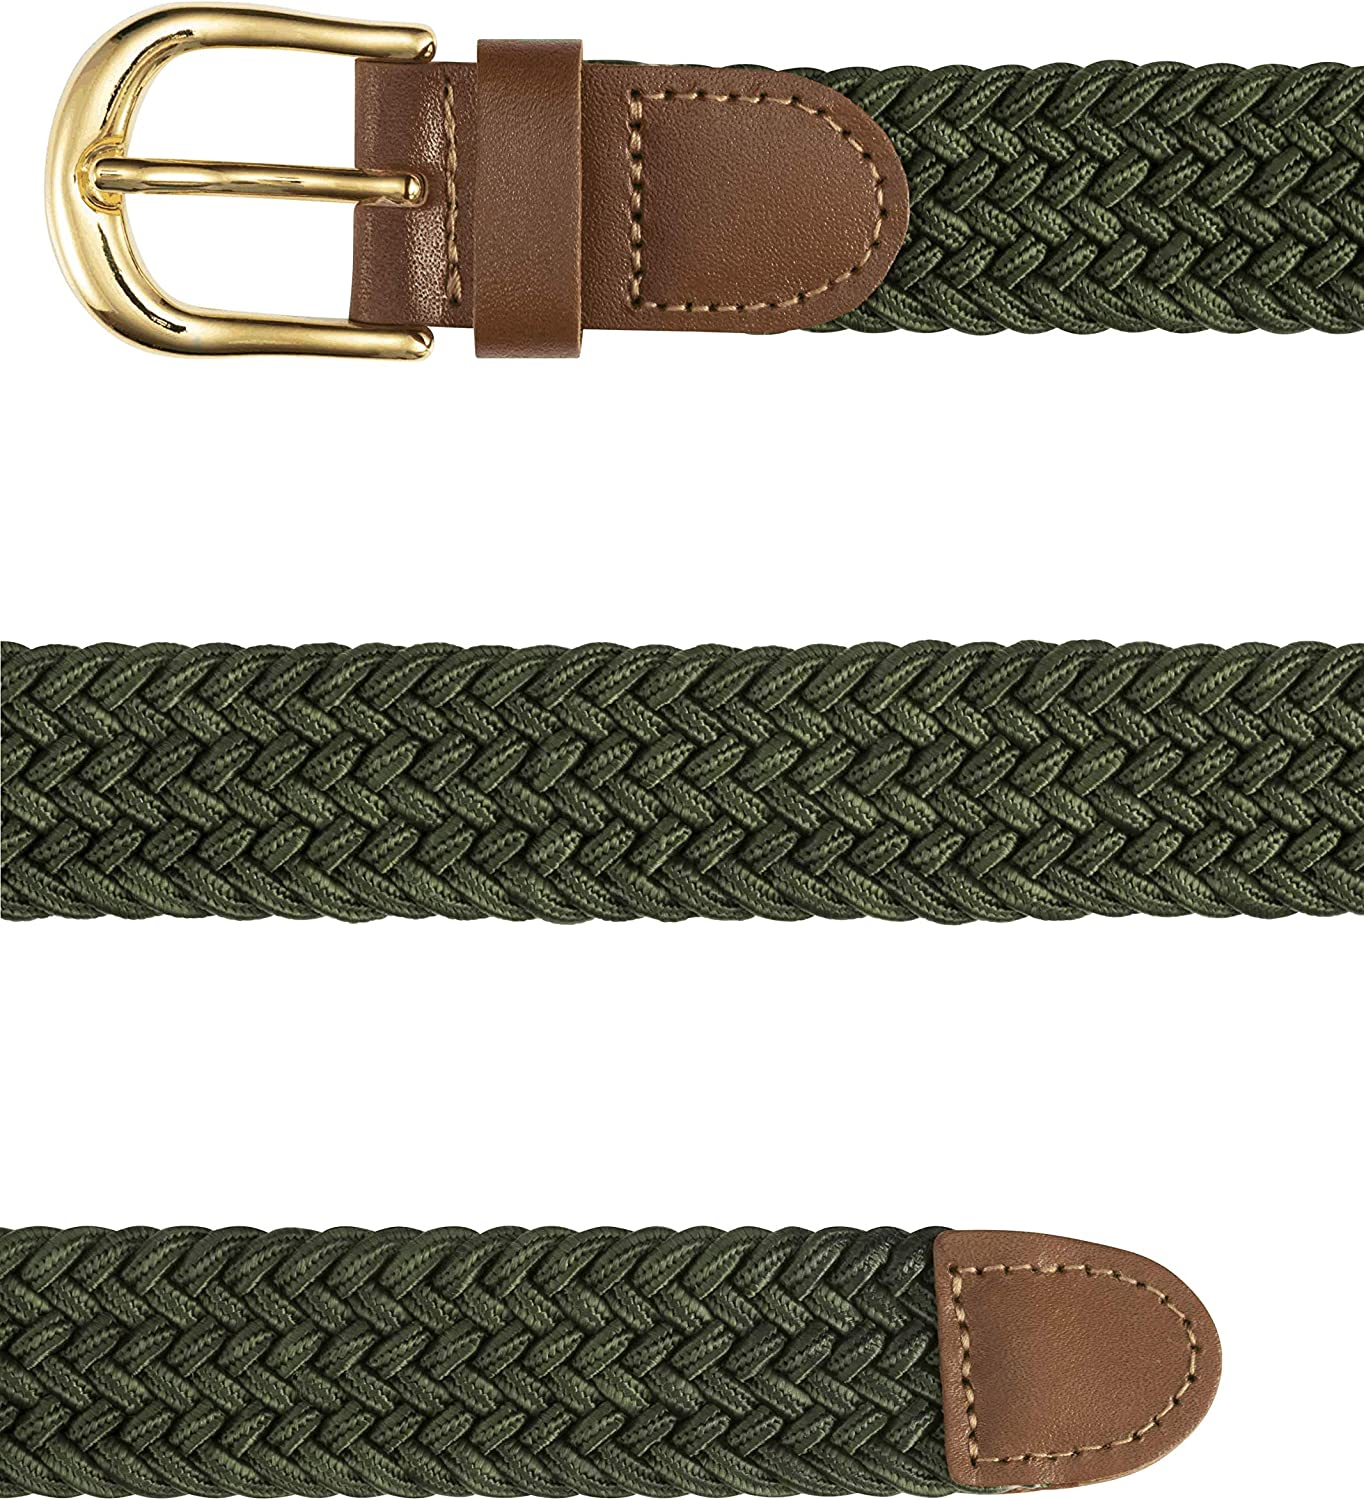 1 inch Wide with Gold Buckle. STREEZE Ladies Stretch Belts 5 Sizes Elasticated Woven Braided Fabric